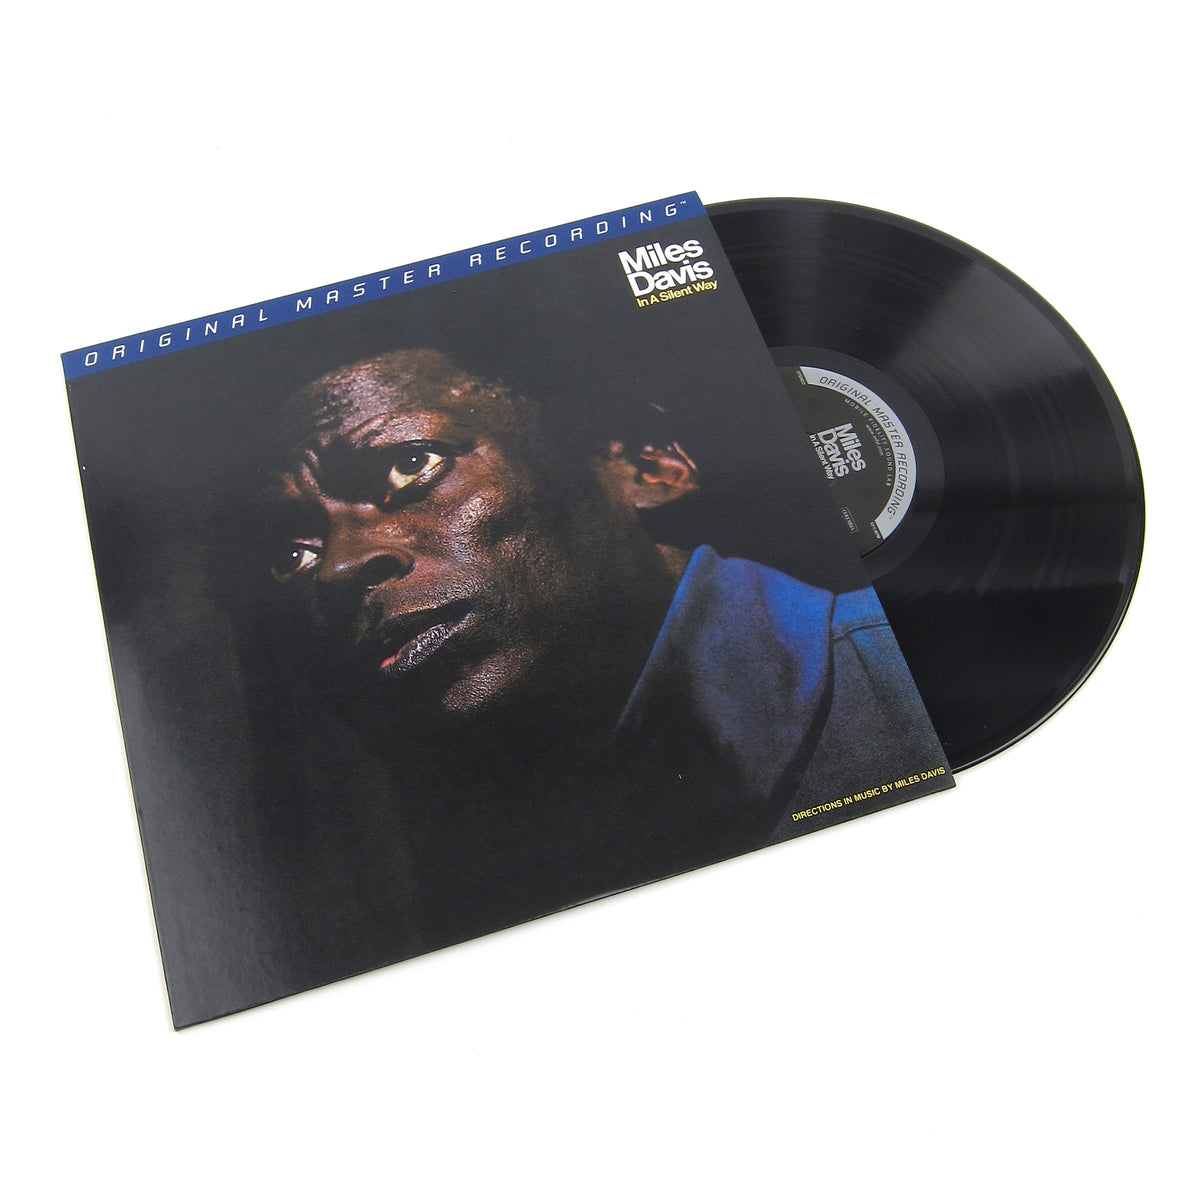 Miles Davis: In A Silent Way (MoFi 180g) Vinyl LP